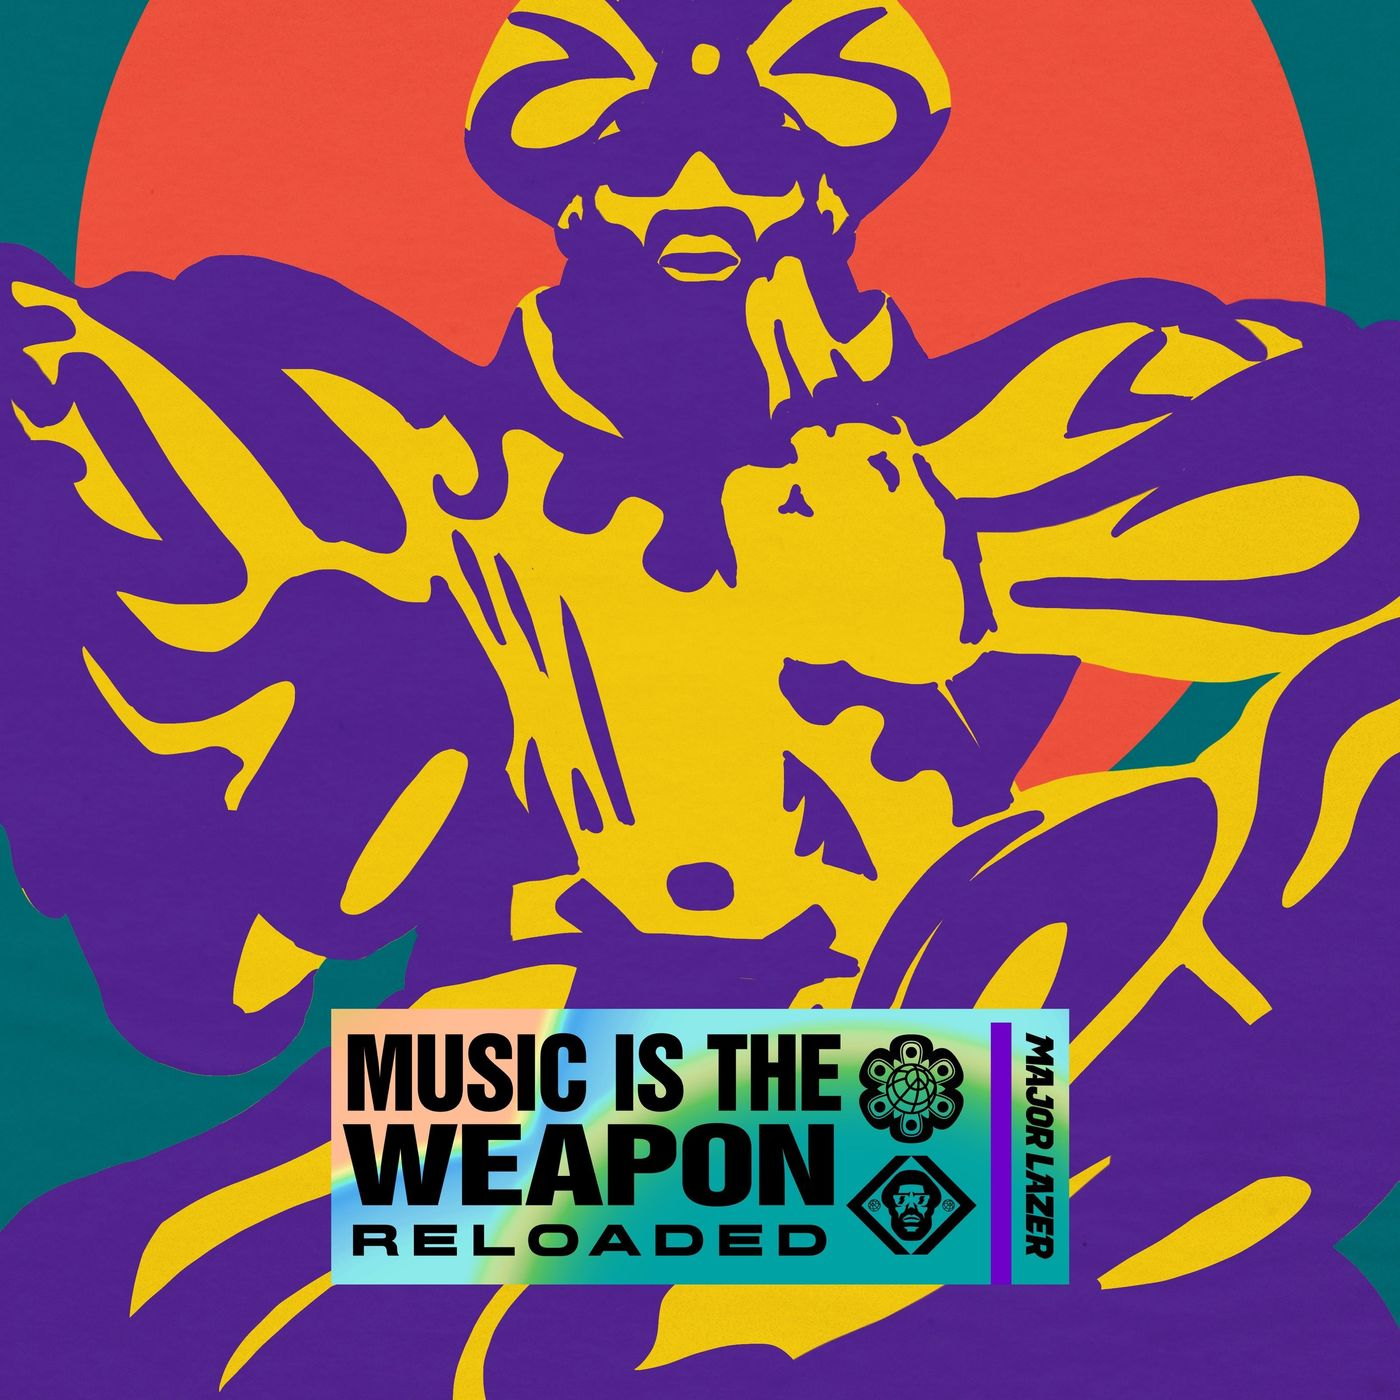 Cover Major Lazer - Music Is the Weapon (Reloaded) (Explicit) album